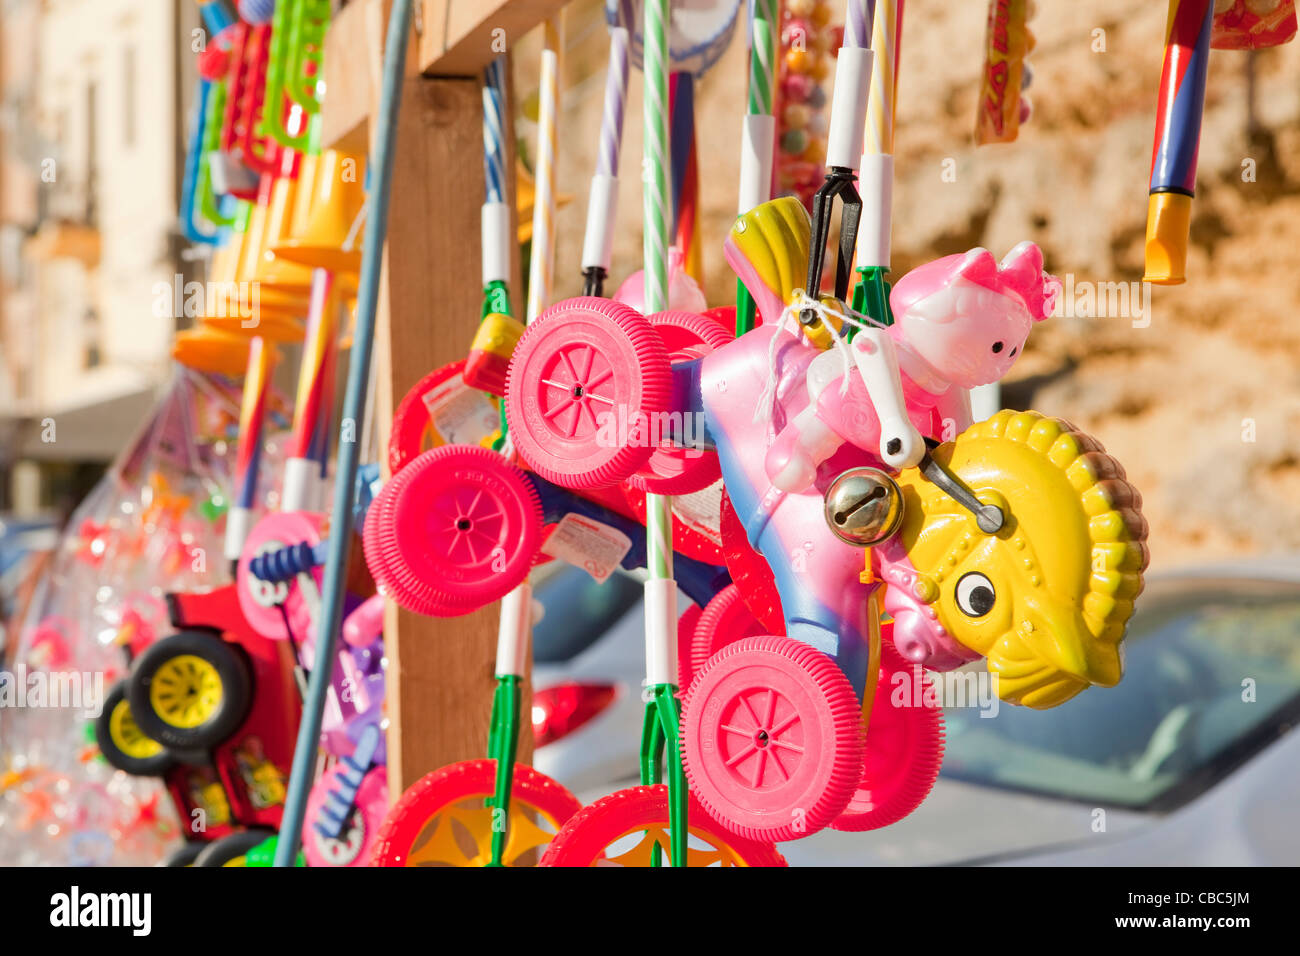 Close up of toys for sale - Stock Image